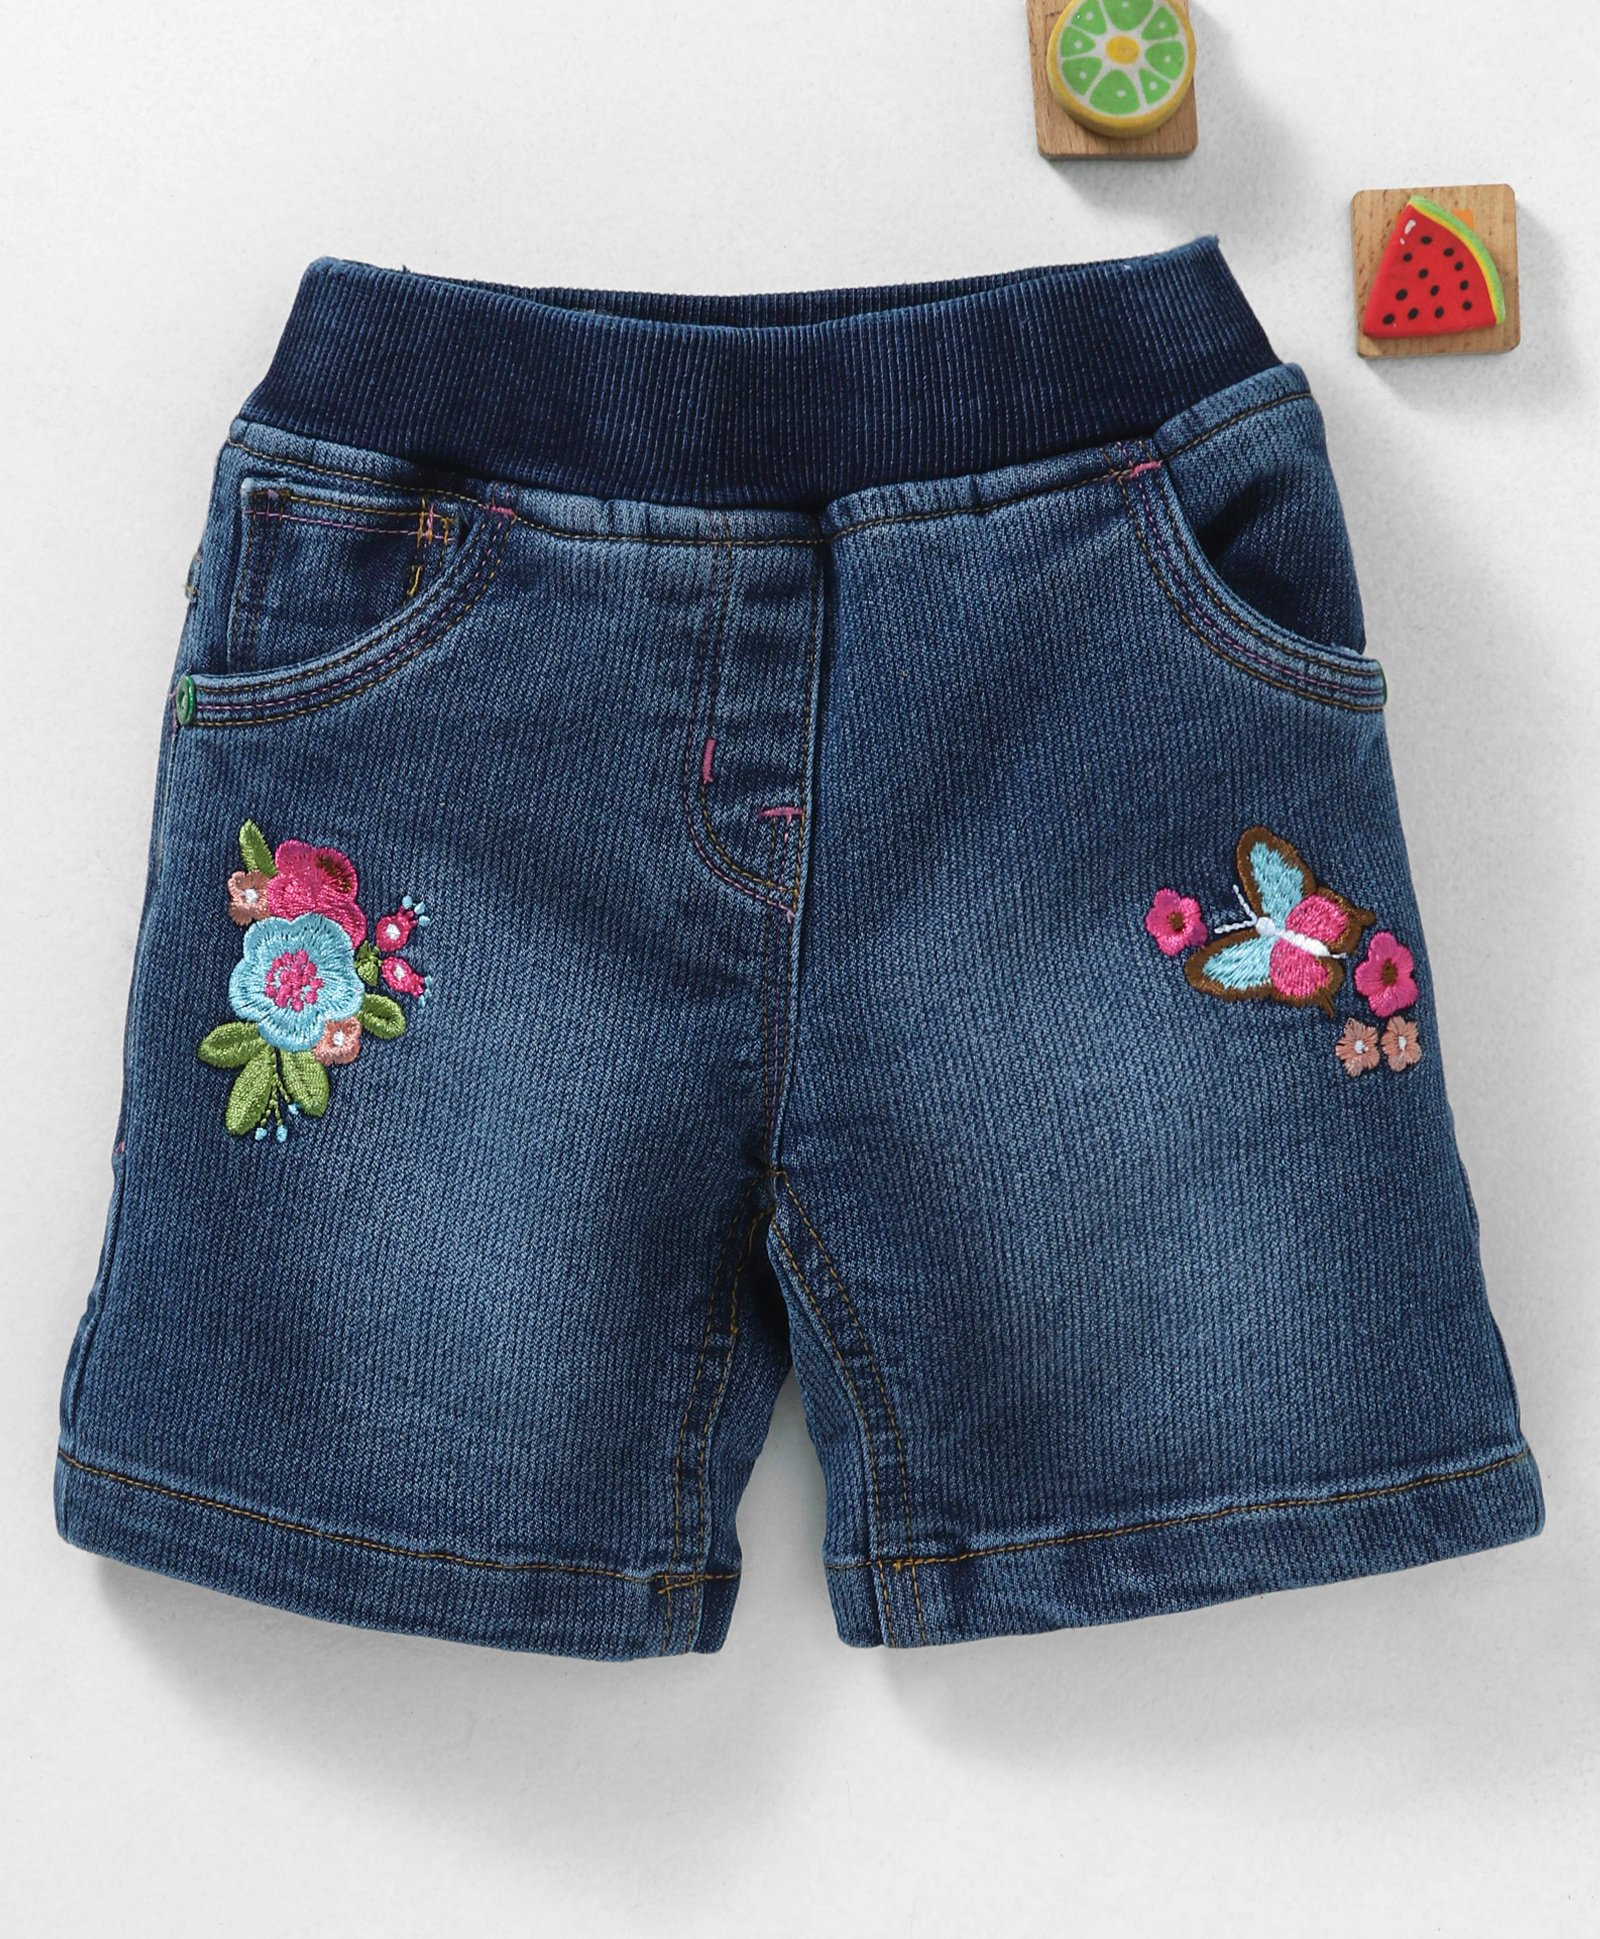 9017d76b21 Buy Olio Kids Pull On Denim Shorts Floral Embroidery Blue for Girls (6 ...